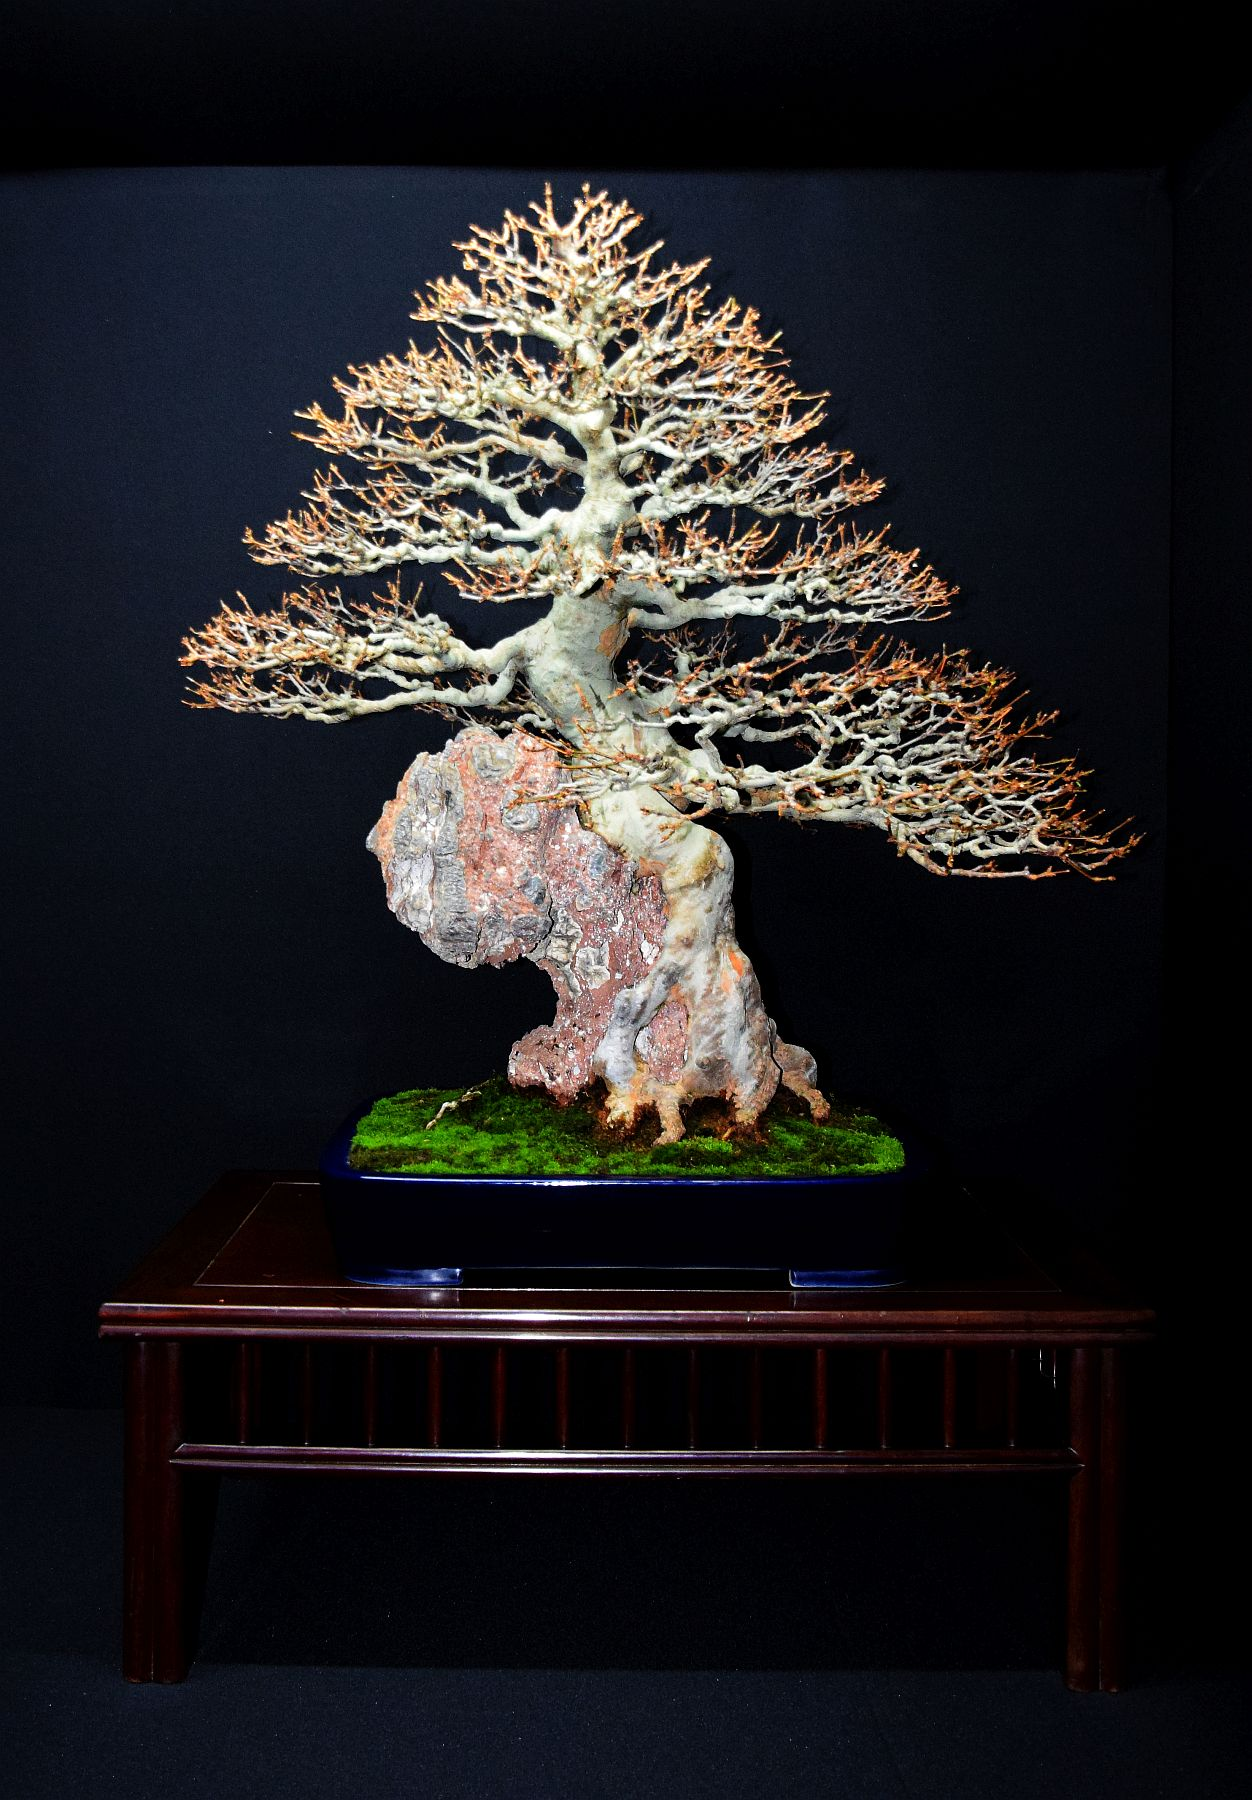 bonsai-museum-luis-vallejo-015